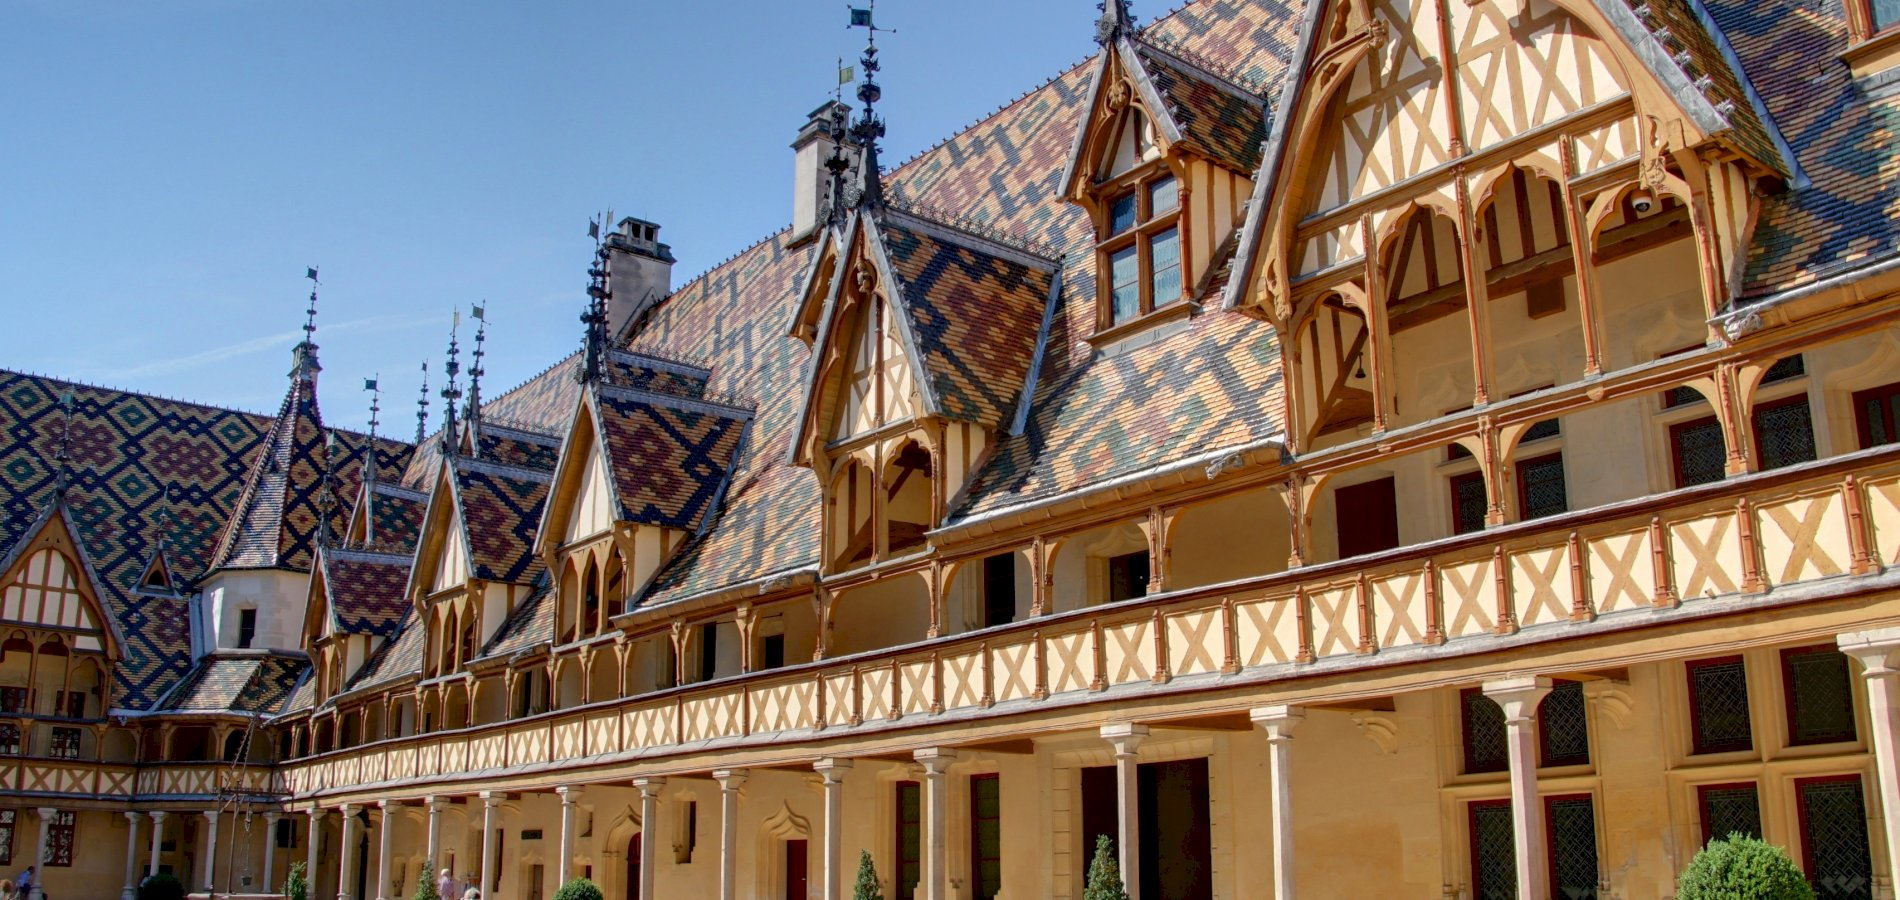 Ophorus Tours - Explore our unique 